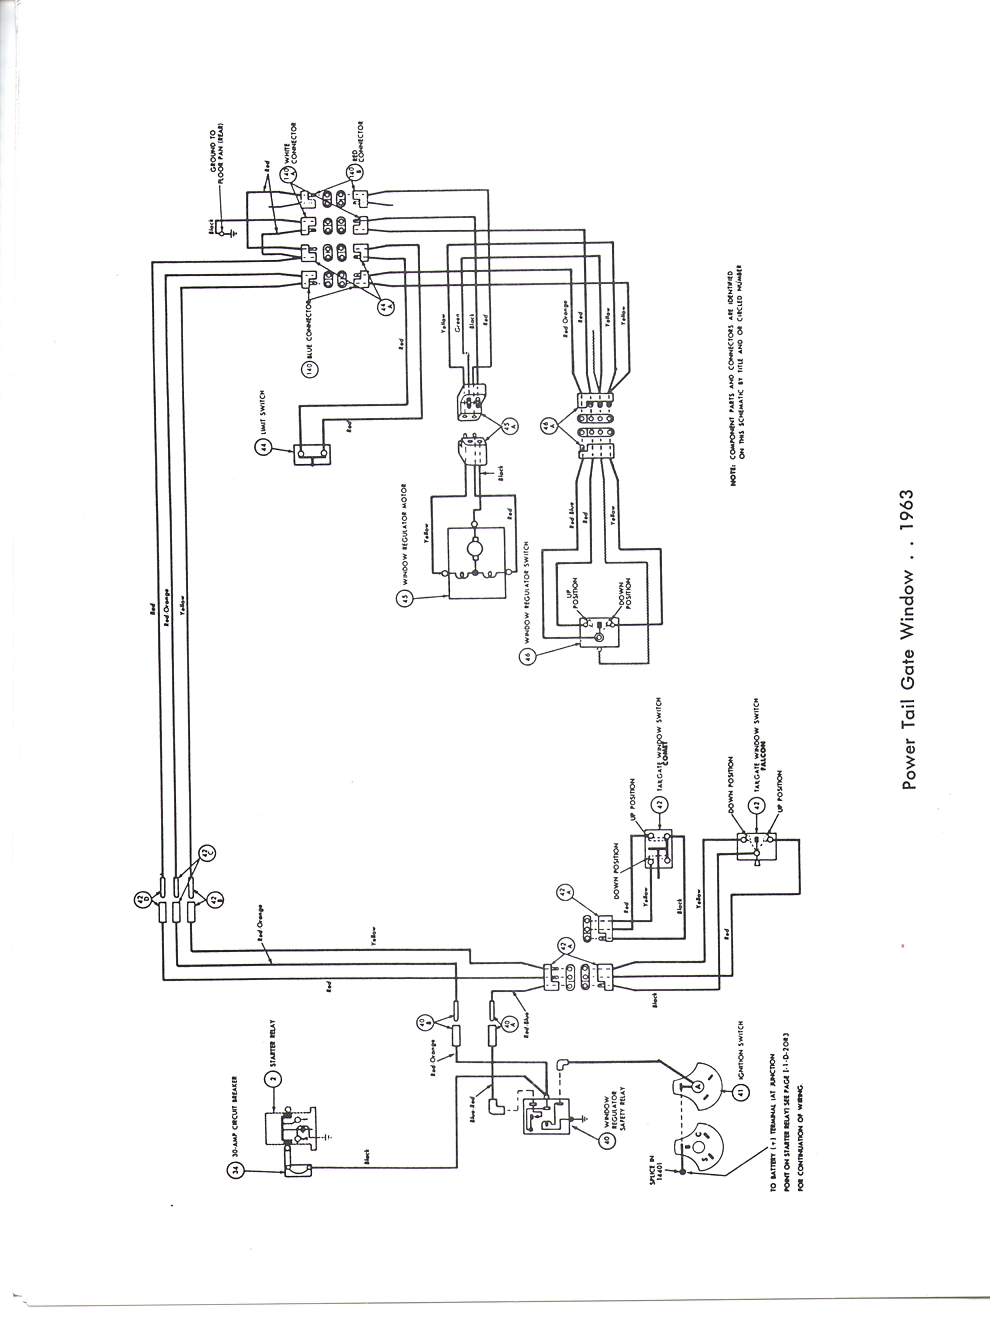 63 Ford Falcon Ignition Switch Wiring Diagram Saab 900